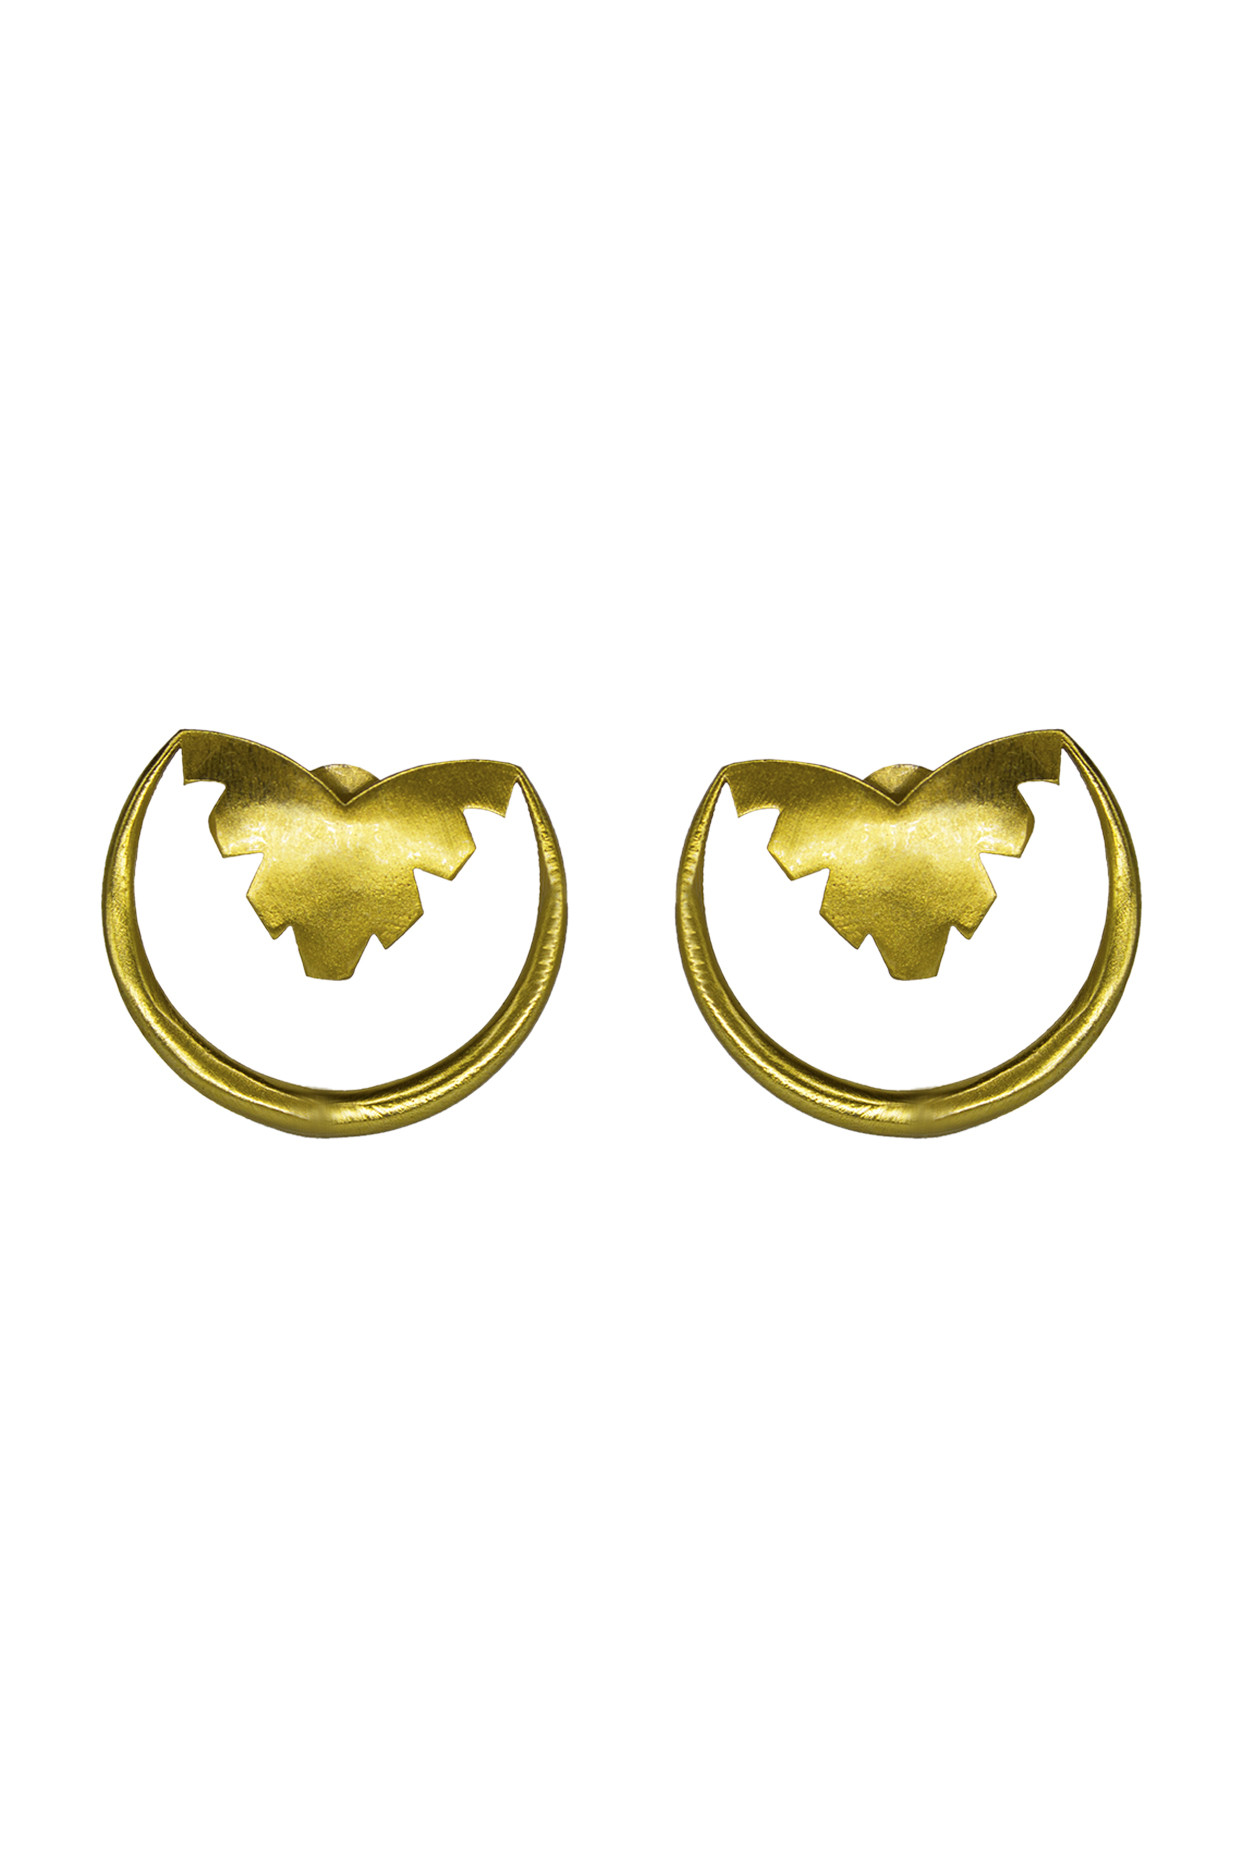 Handcrafted Brass Semi Circle Earrings In Gold by Toorya